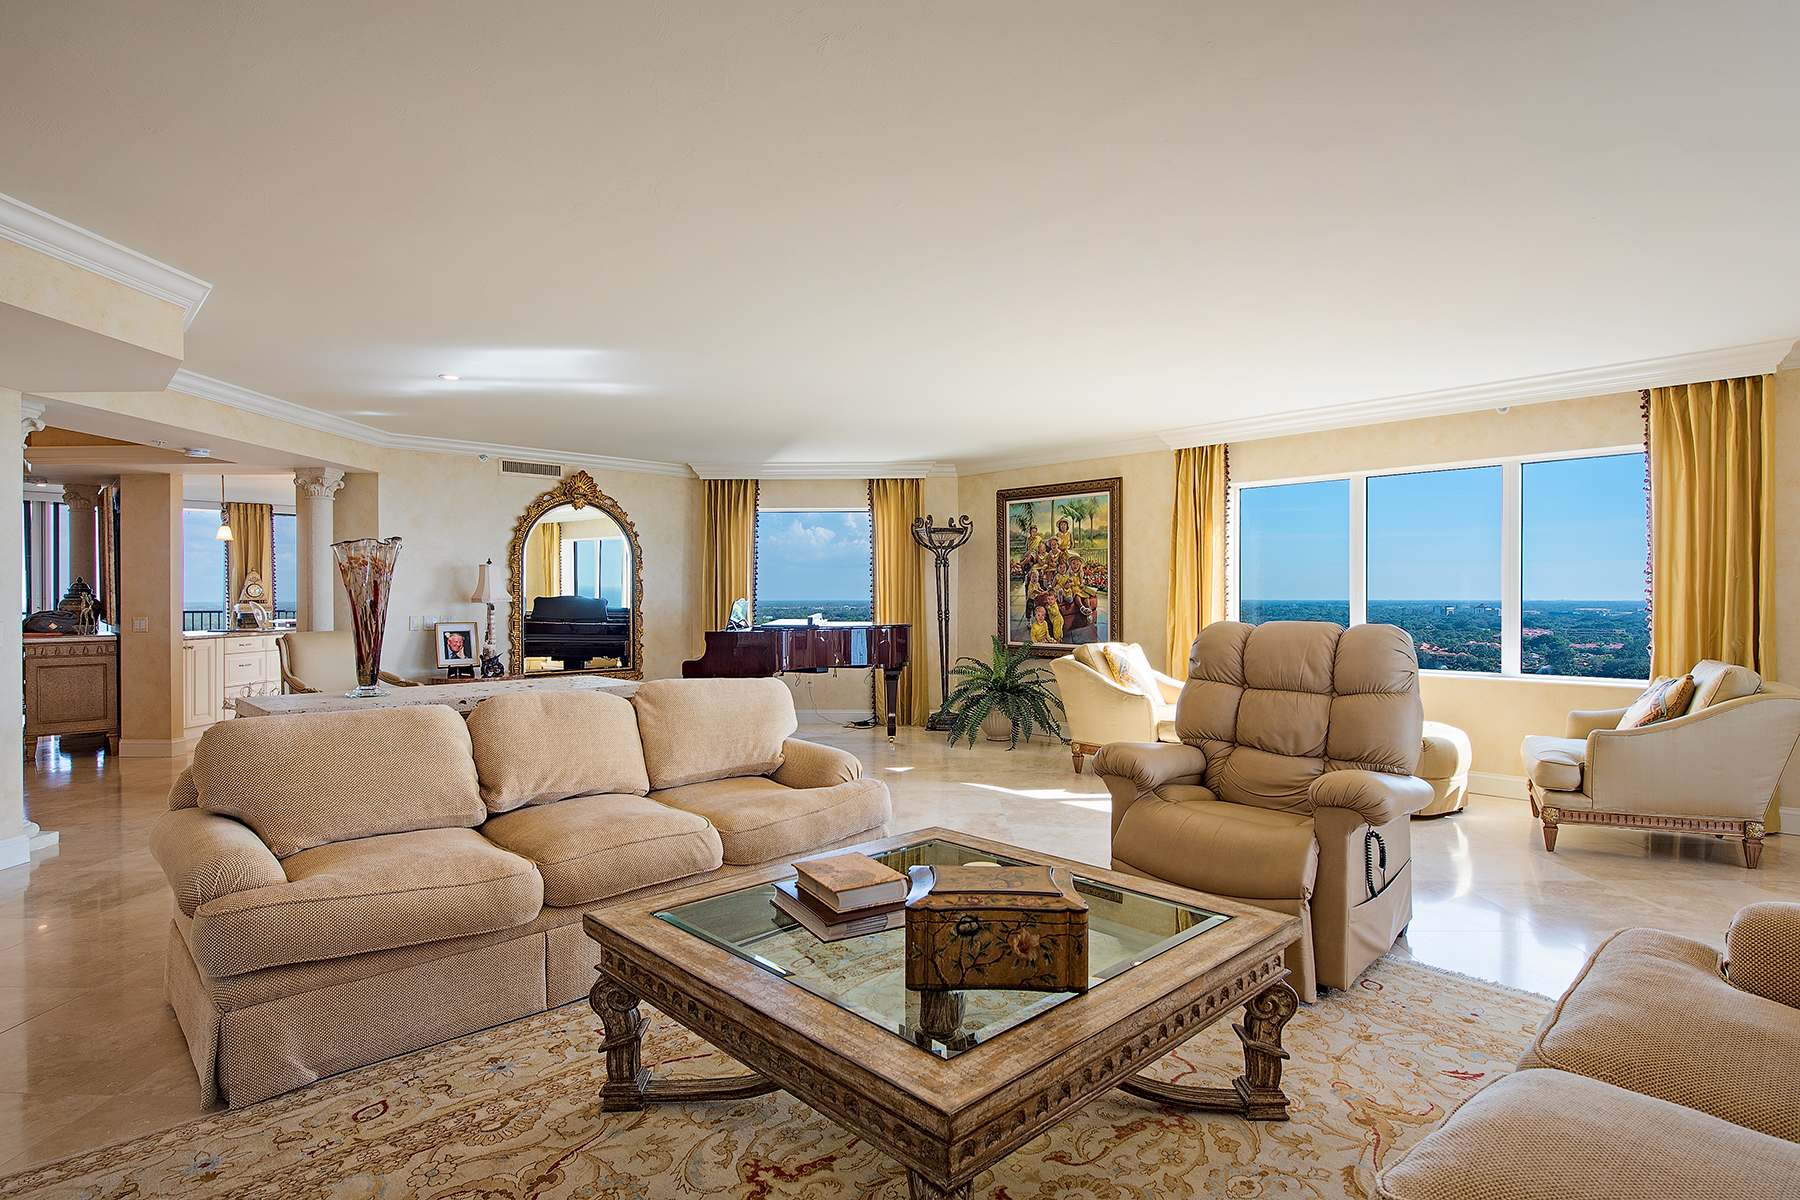 Condominium for Sale at PELICAN BAY - MARBELLA 7425 Pelican Bay Blvd 2101/2102, Naples, Florida 34108 United States